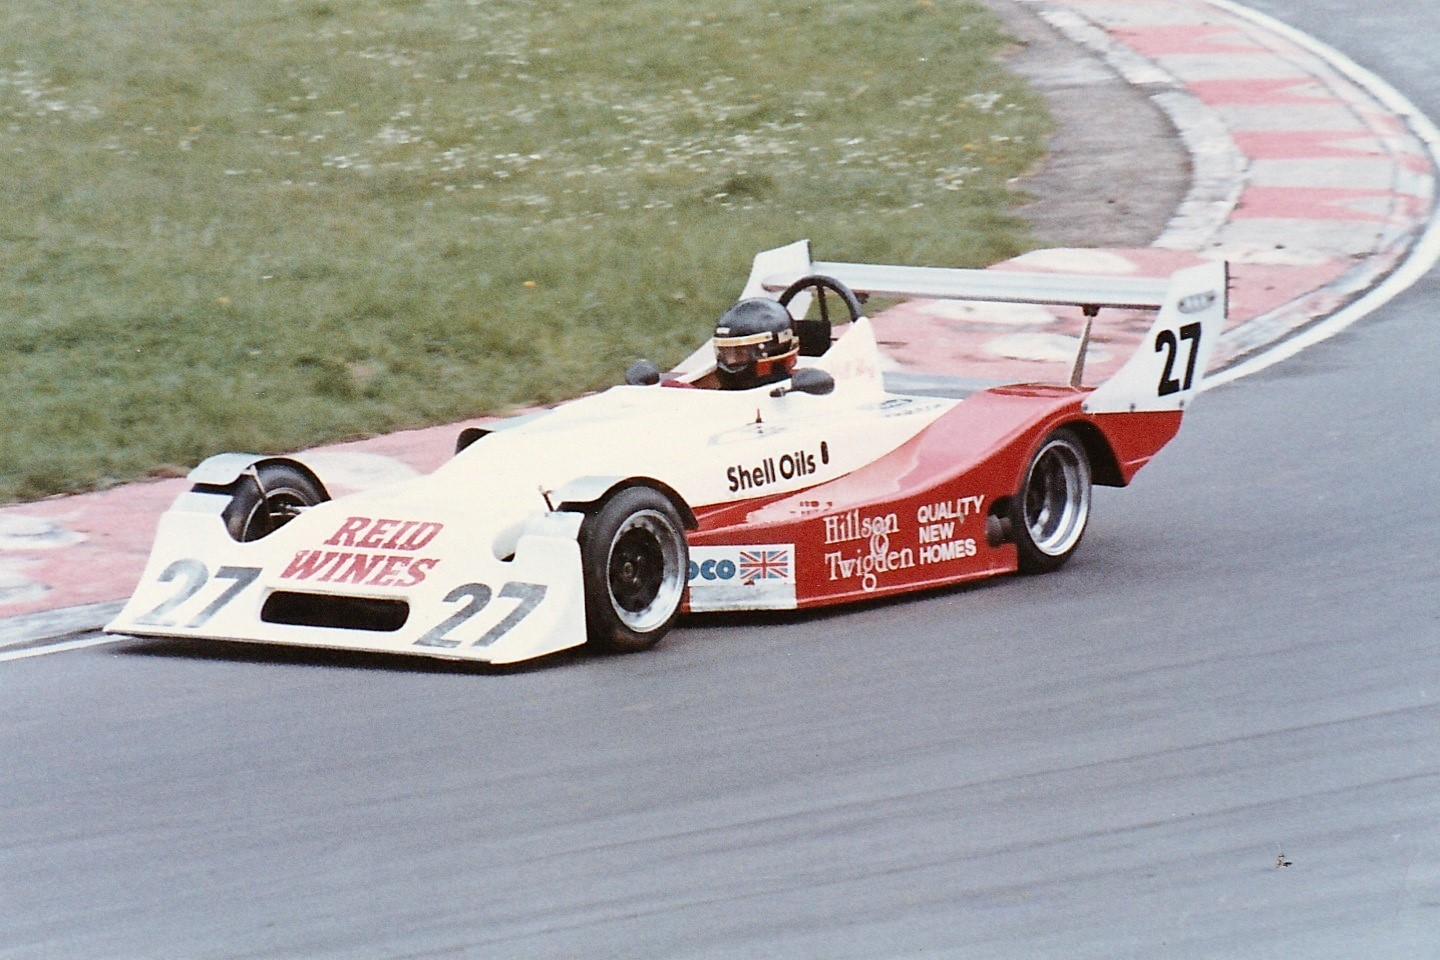 1984 MK24B - Clubmans Formula car: a development of the MK24 with revised rear bodywork and a further development of the rear axle lateral location system which Arthur termed as the WOB system as it was an amalgam of Watts, Olley and Bulldog mechanisms. Successes included: 1983 - Will Hoy, BARC Clubmans champion. 1983 - Hill Hoy, Doningotn Clubmans champion. 1984 - Will Hoy, Trimoco Clubmans champion. 1984 - Will Hoy, Clubmans Register champion. 1985 - Guy Woodward, Powerscreen Clubmans champion.